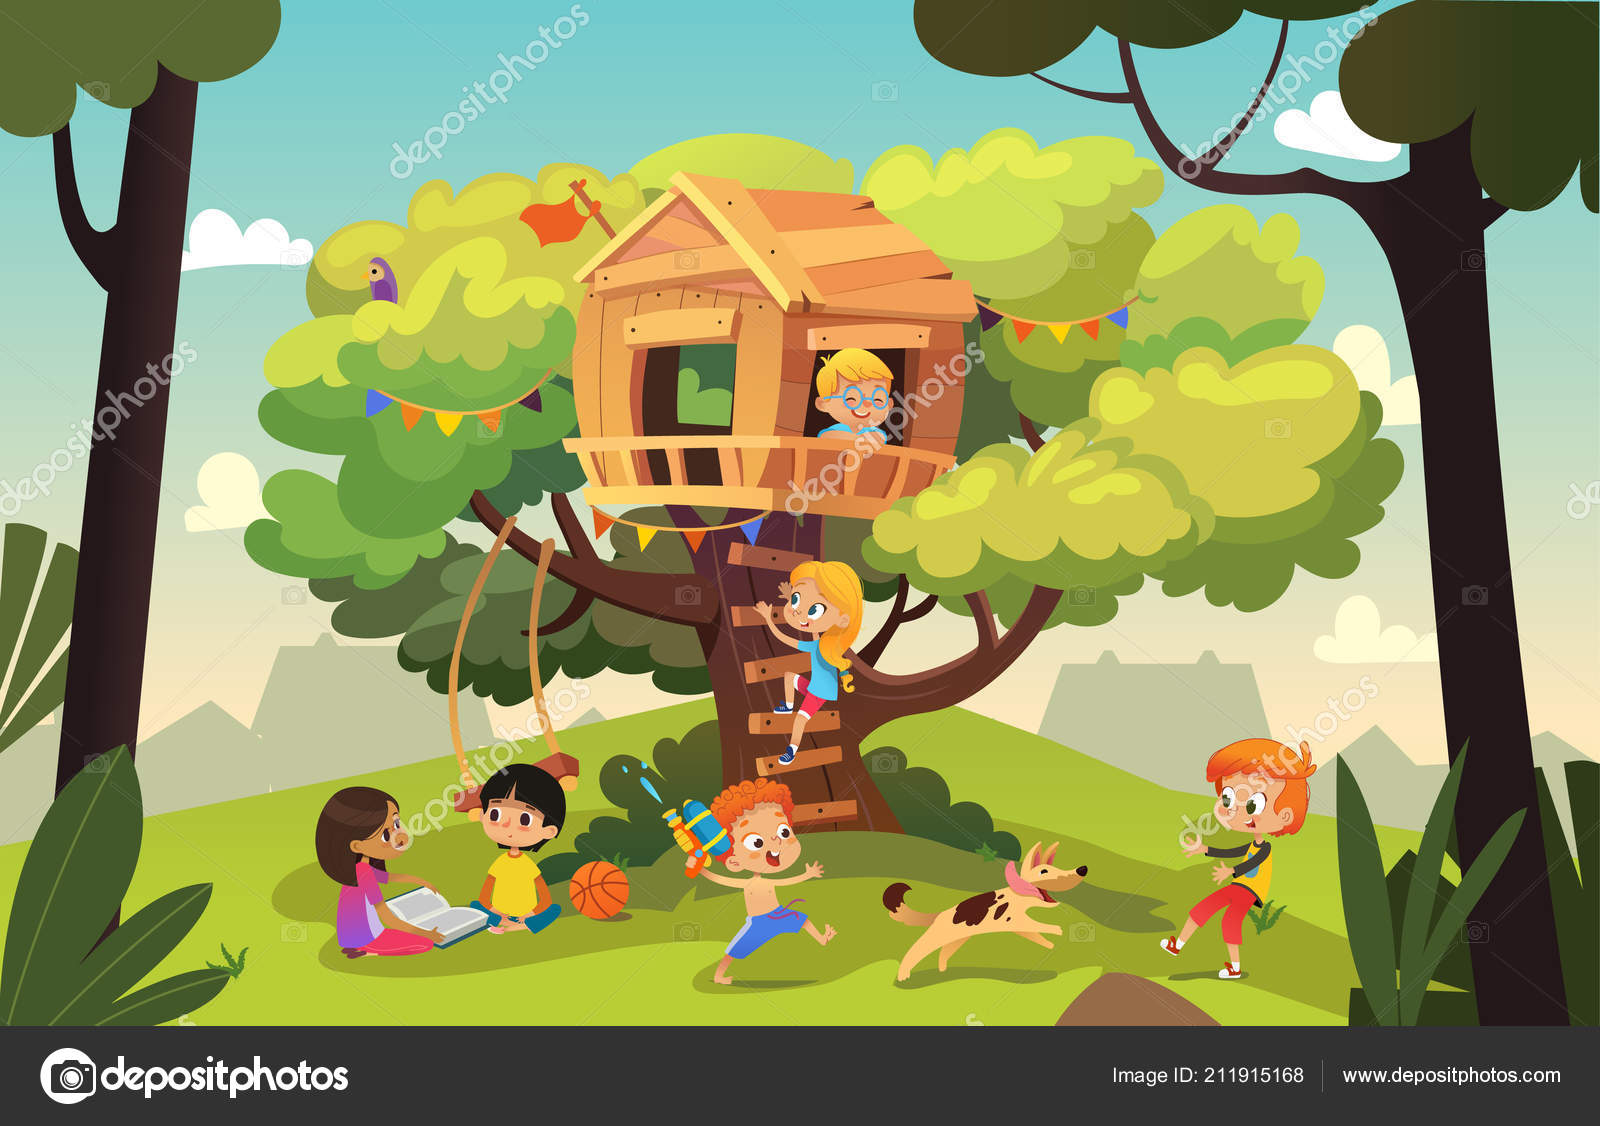 Áˆ Kid Tree House Stock Pictures Royalty Free Kids Treehouse Images Download On Depositphotos Tree house kids brings all of the adventure of the outdoors home to your kids! https depositphotos com 211915168 stock illustration happy multiracial boys and girls html